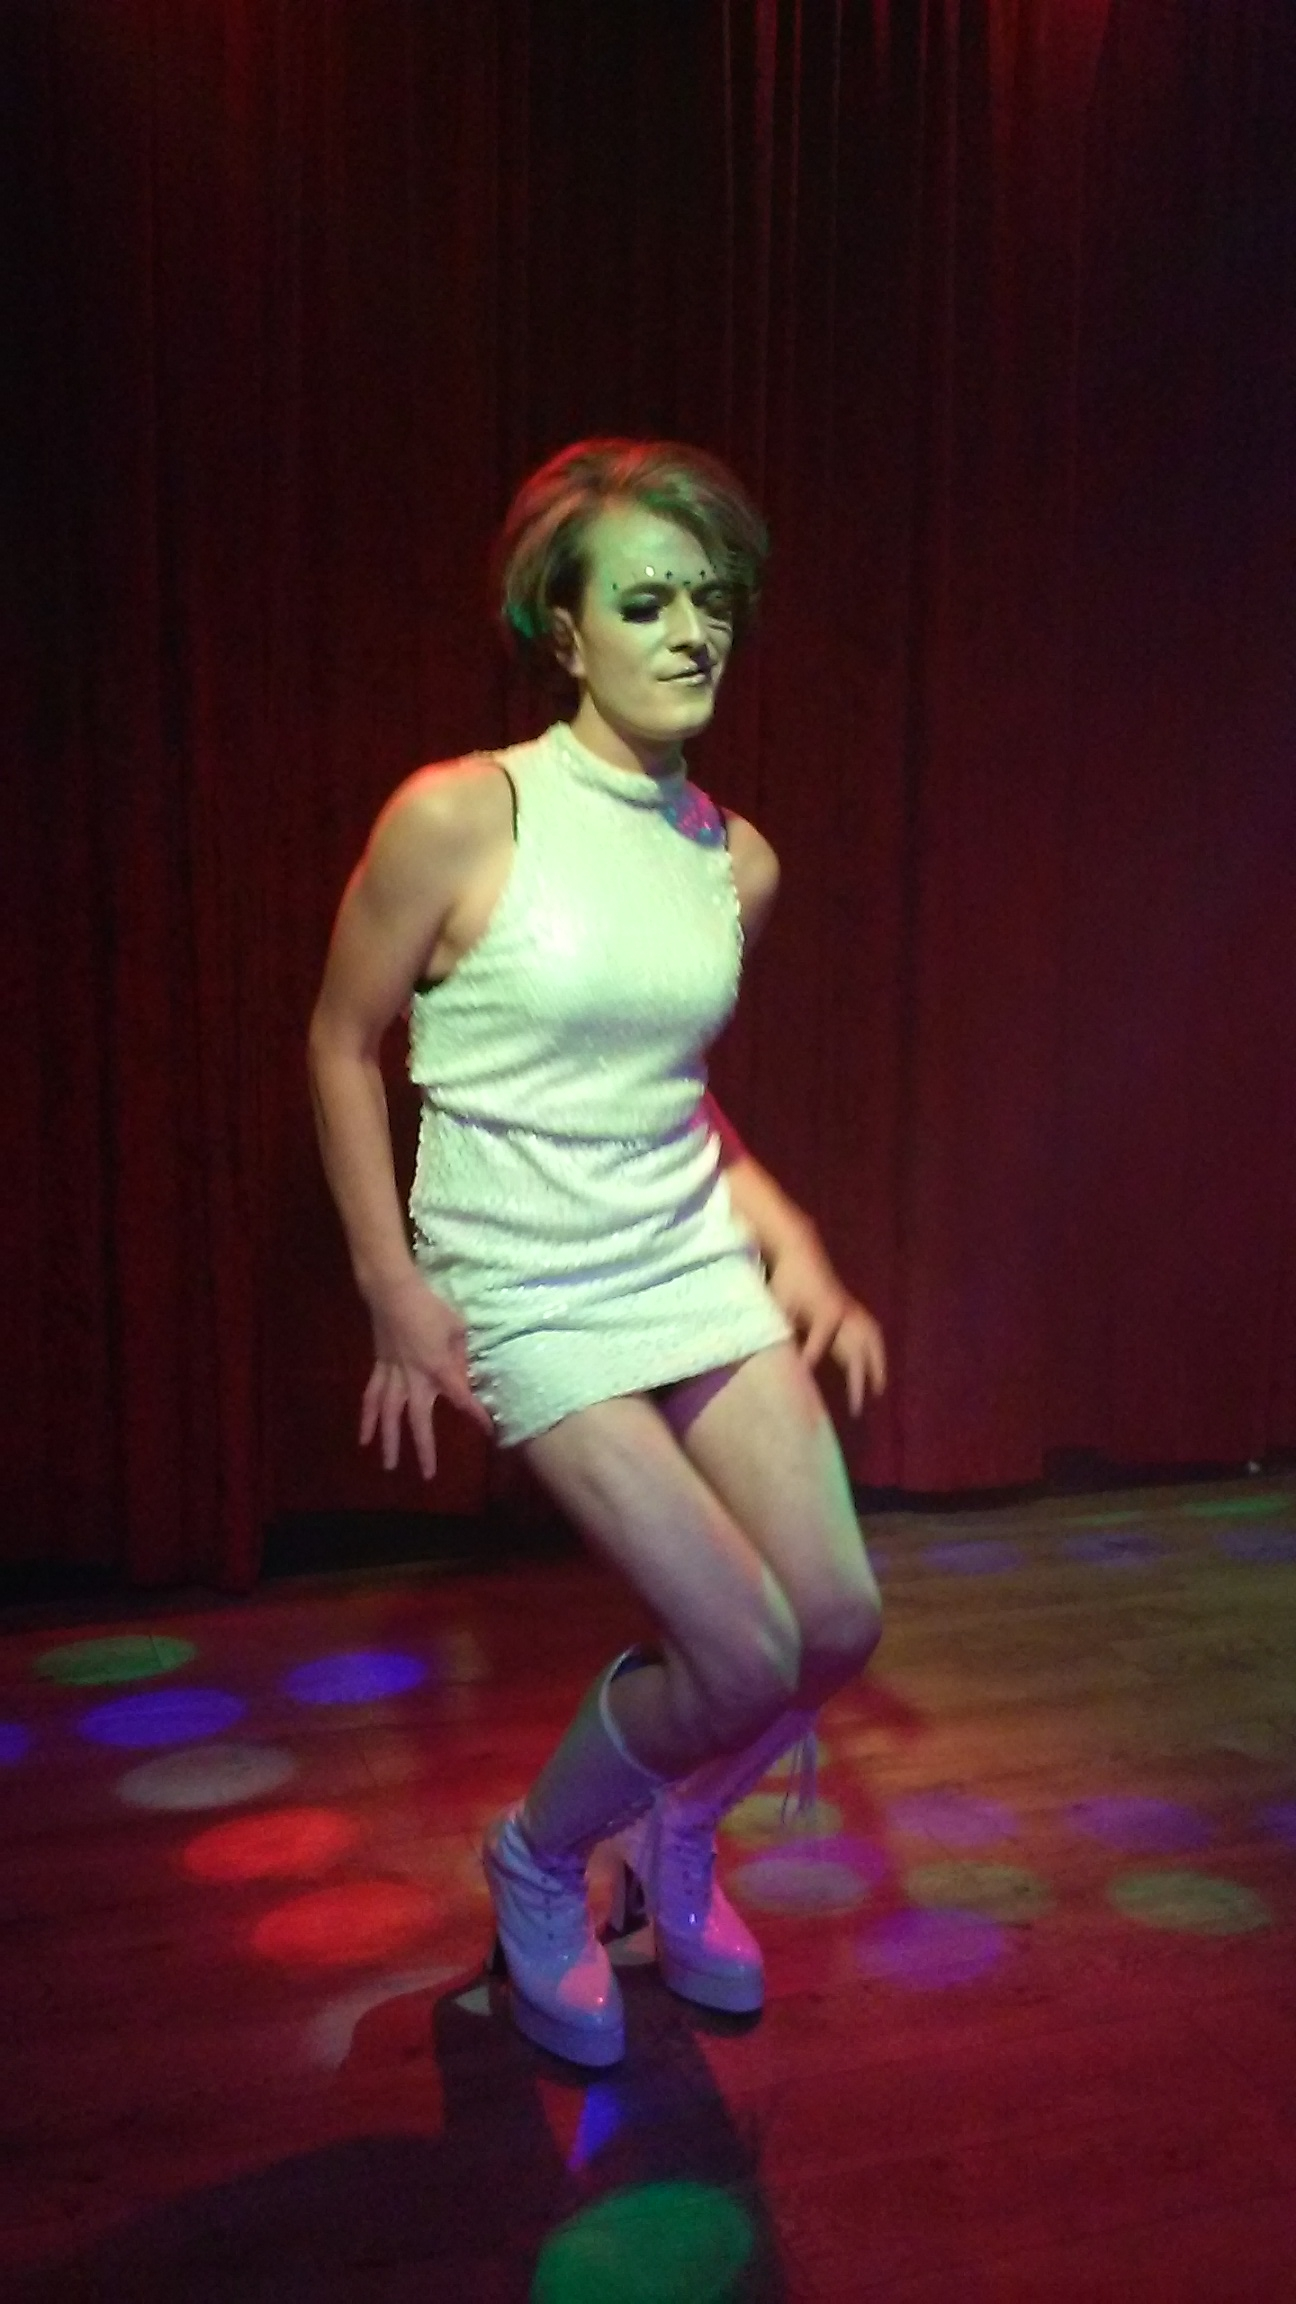 Dragshow 20151121 DungeonsDragQueens 10